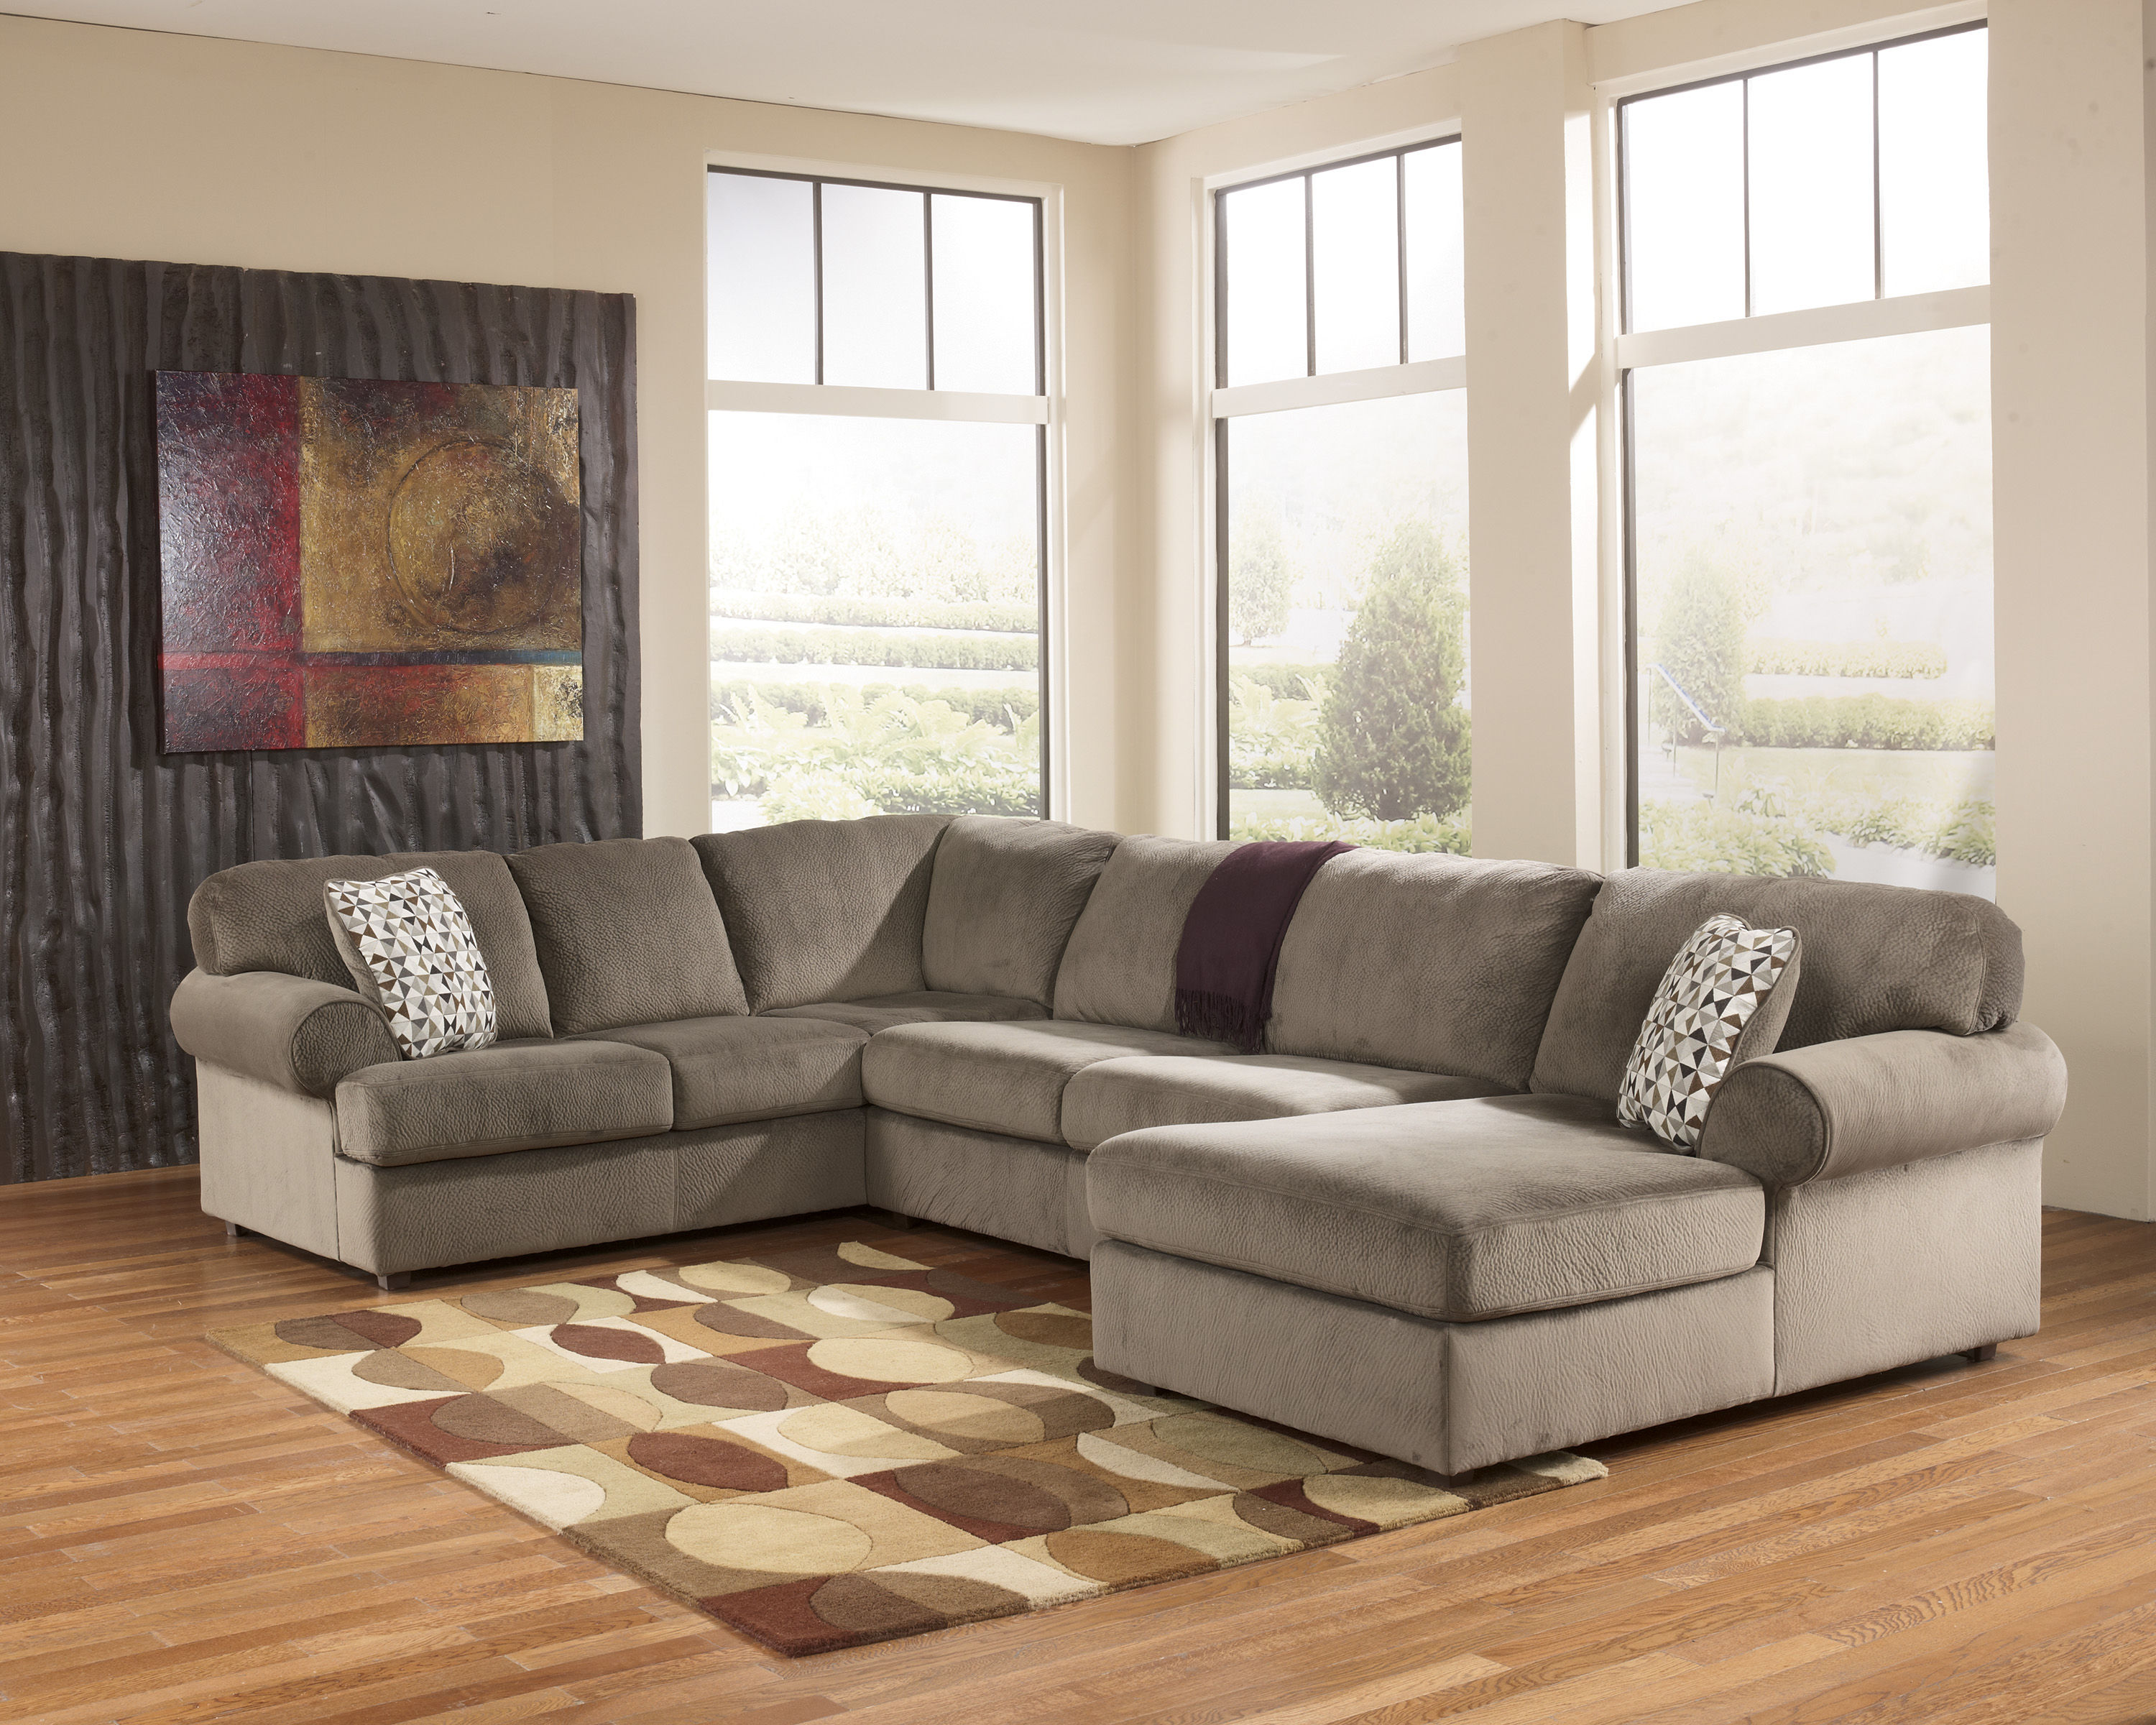 Jessa Place Dune Sectional Right Side Chaise